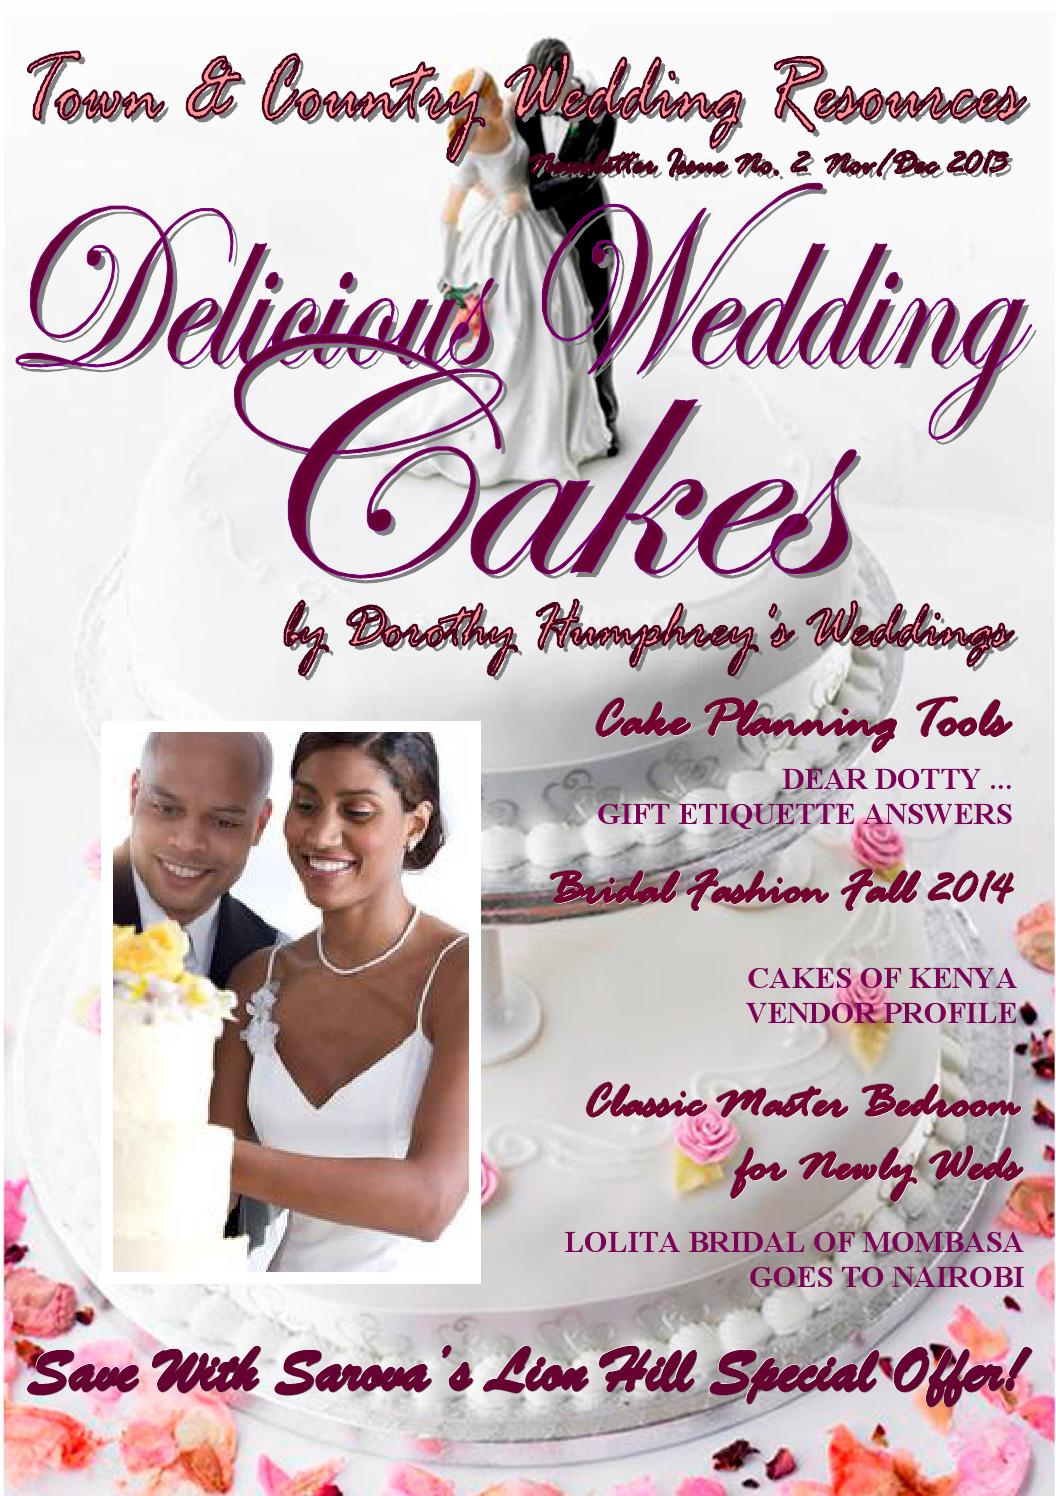 wedding cake vendors in kenya town amp country wedding resources by dorothy humphrey s 26763